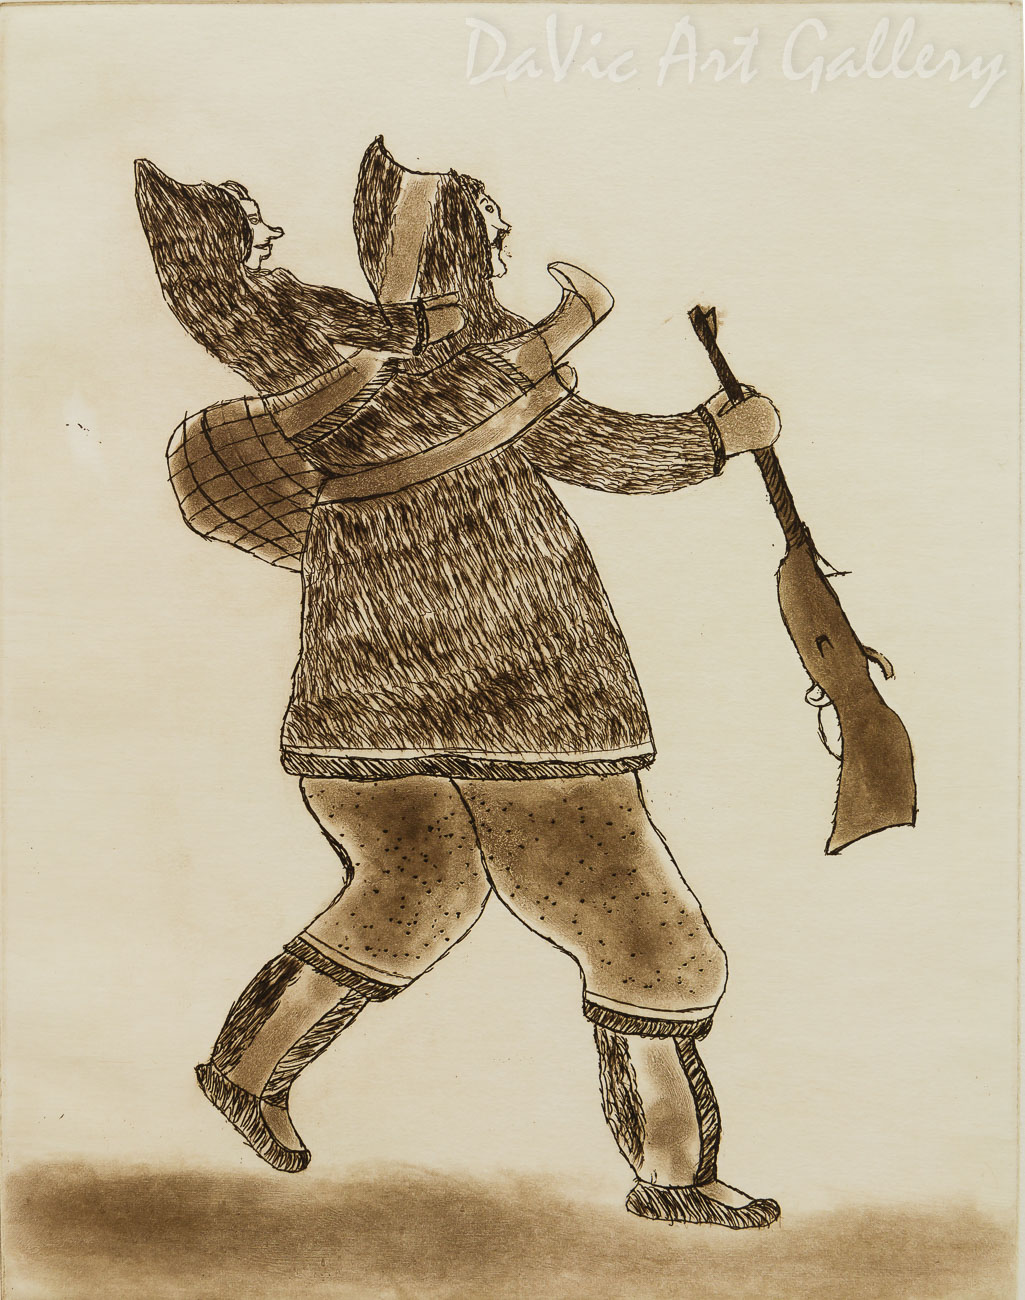 'Hunter Carrying Child' by Davidee Akpalialuk - Inuit - Pangnirtung 1996